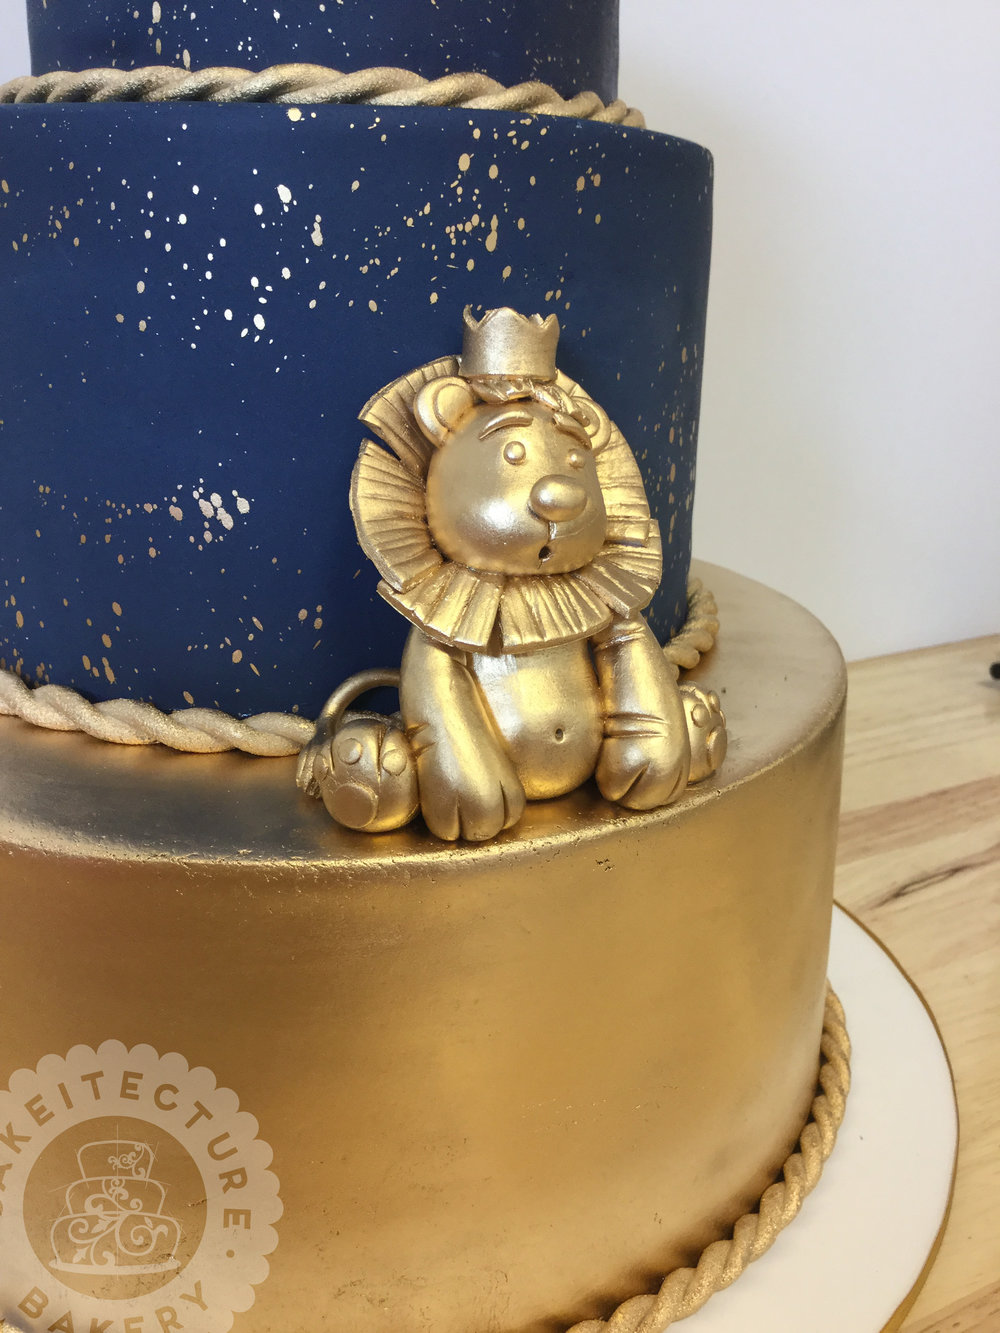 Cakeitecture Bakery 1703 gold lion cake topper.jpg